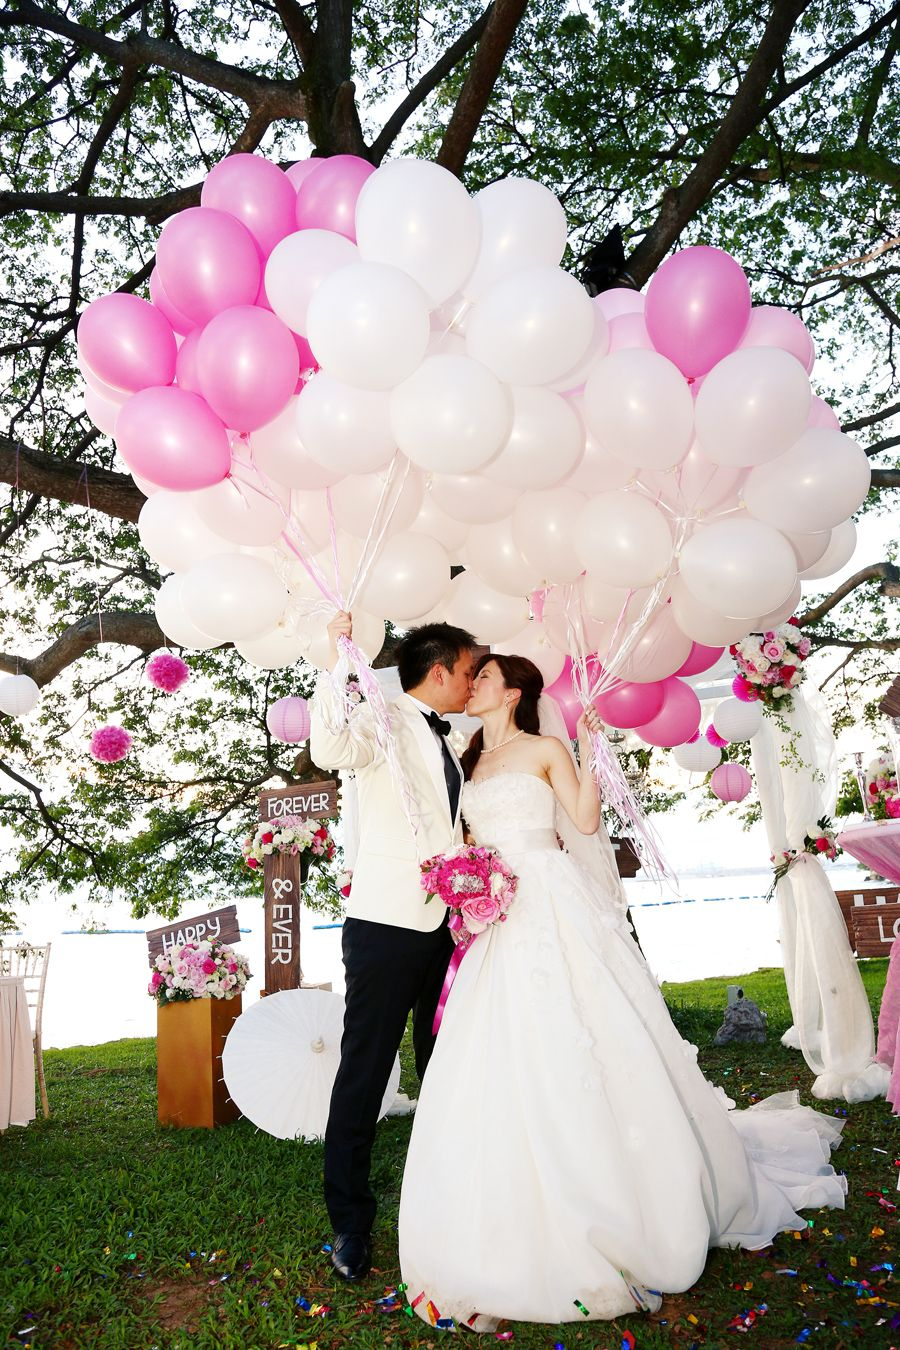 Wedding couple posing with balloons | Pink and White Wedding at Shangri-La's Rasa Sentosa Resort: Tris and Jacqueline